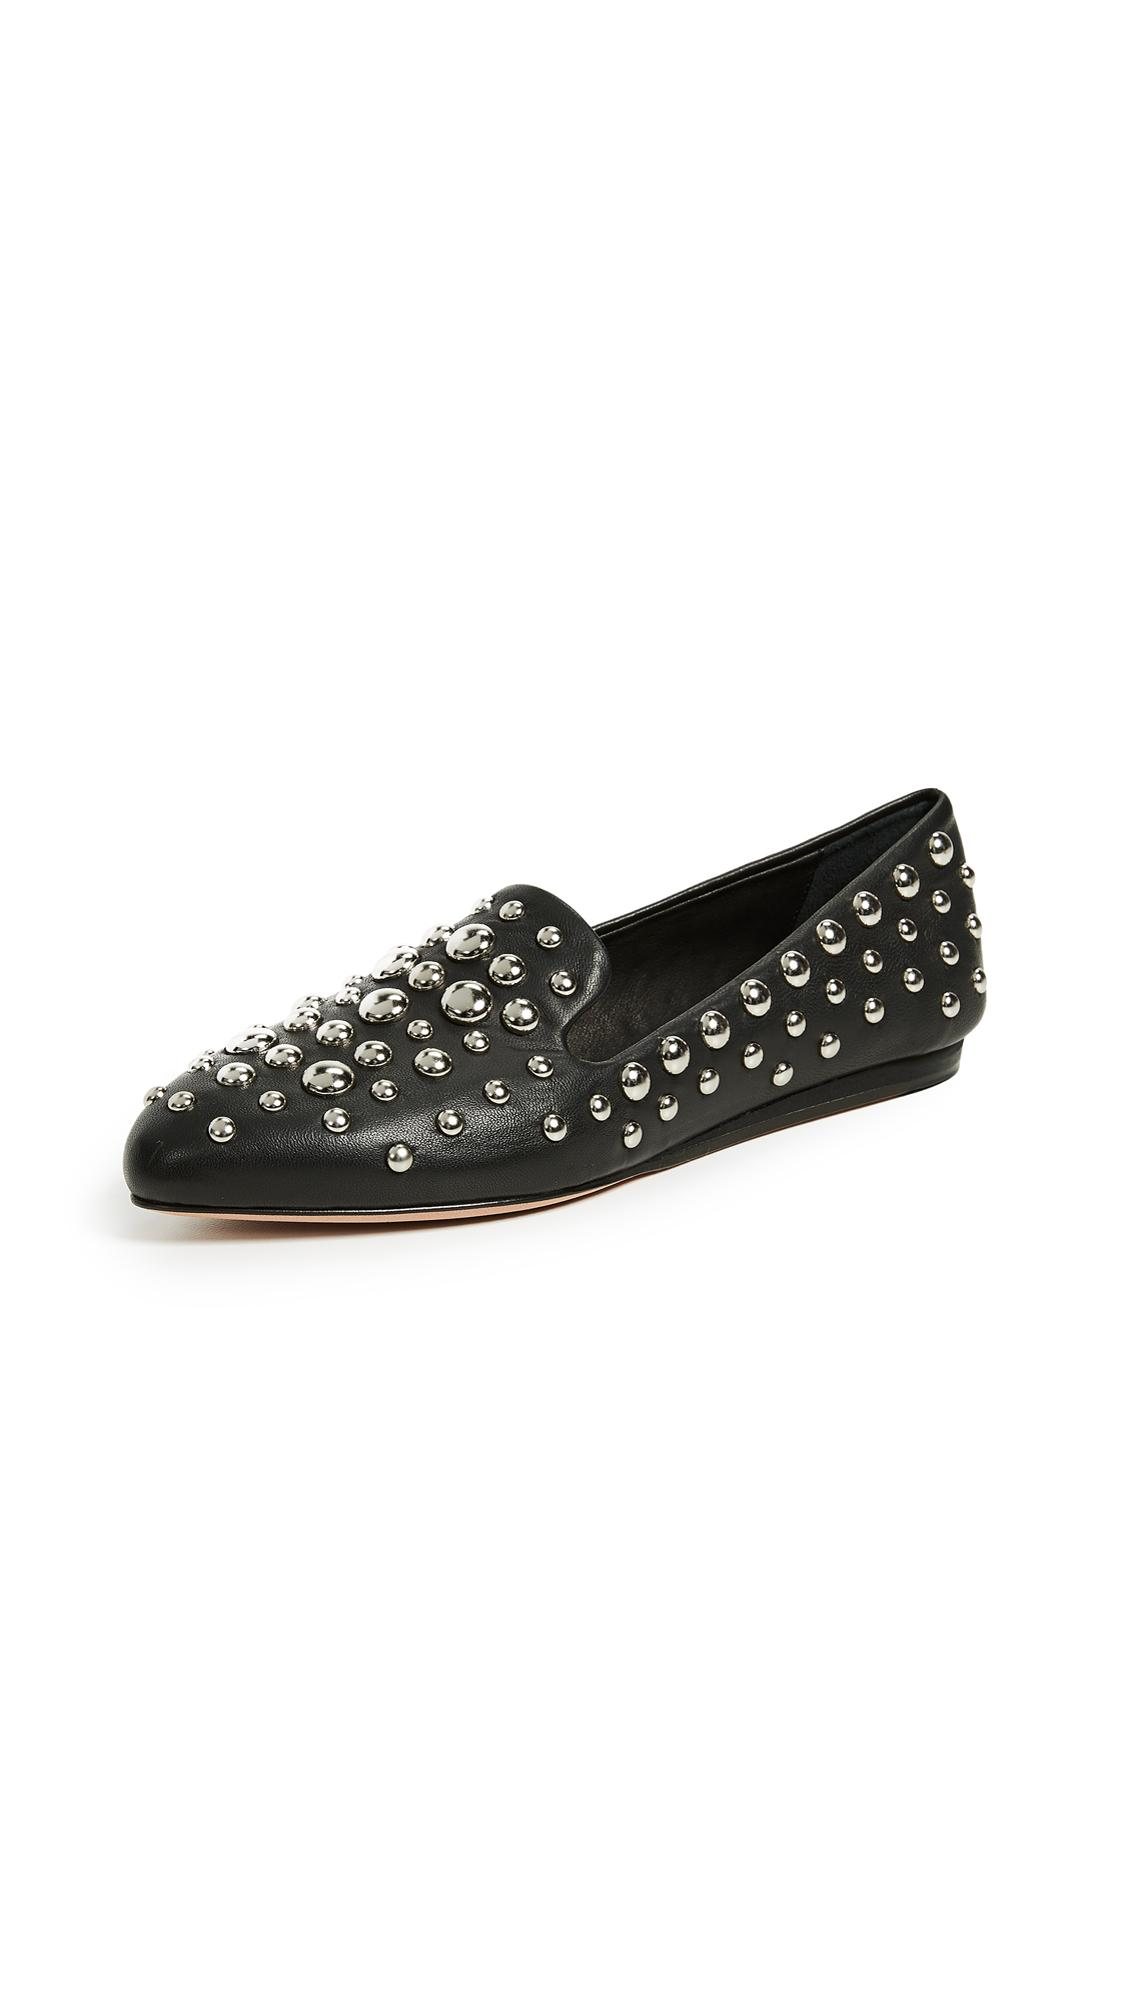 fce9a98cde9 Veronica Beard Griffin Studded Napa Loafers In Black Silver